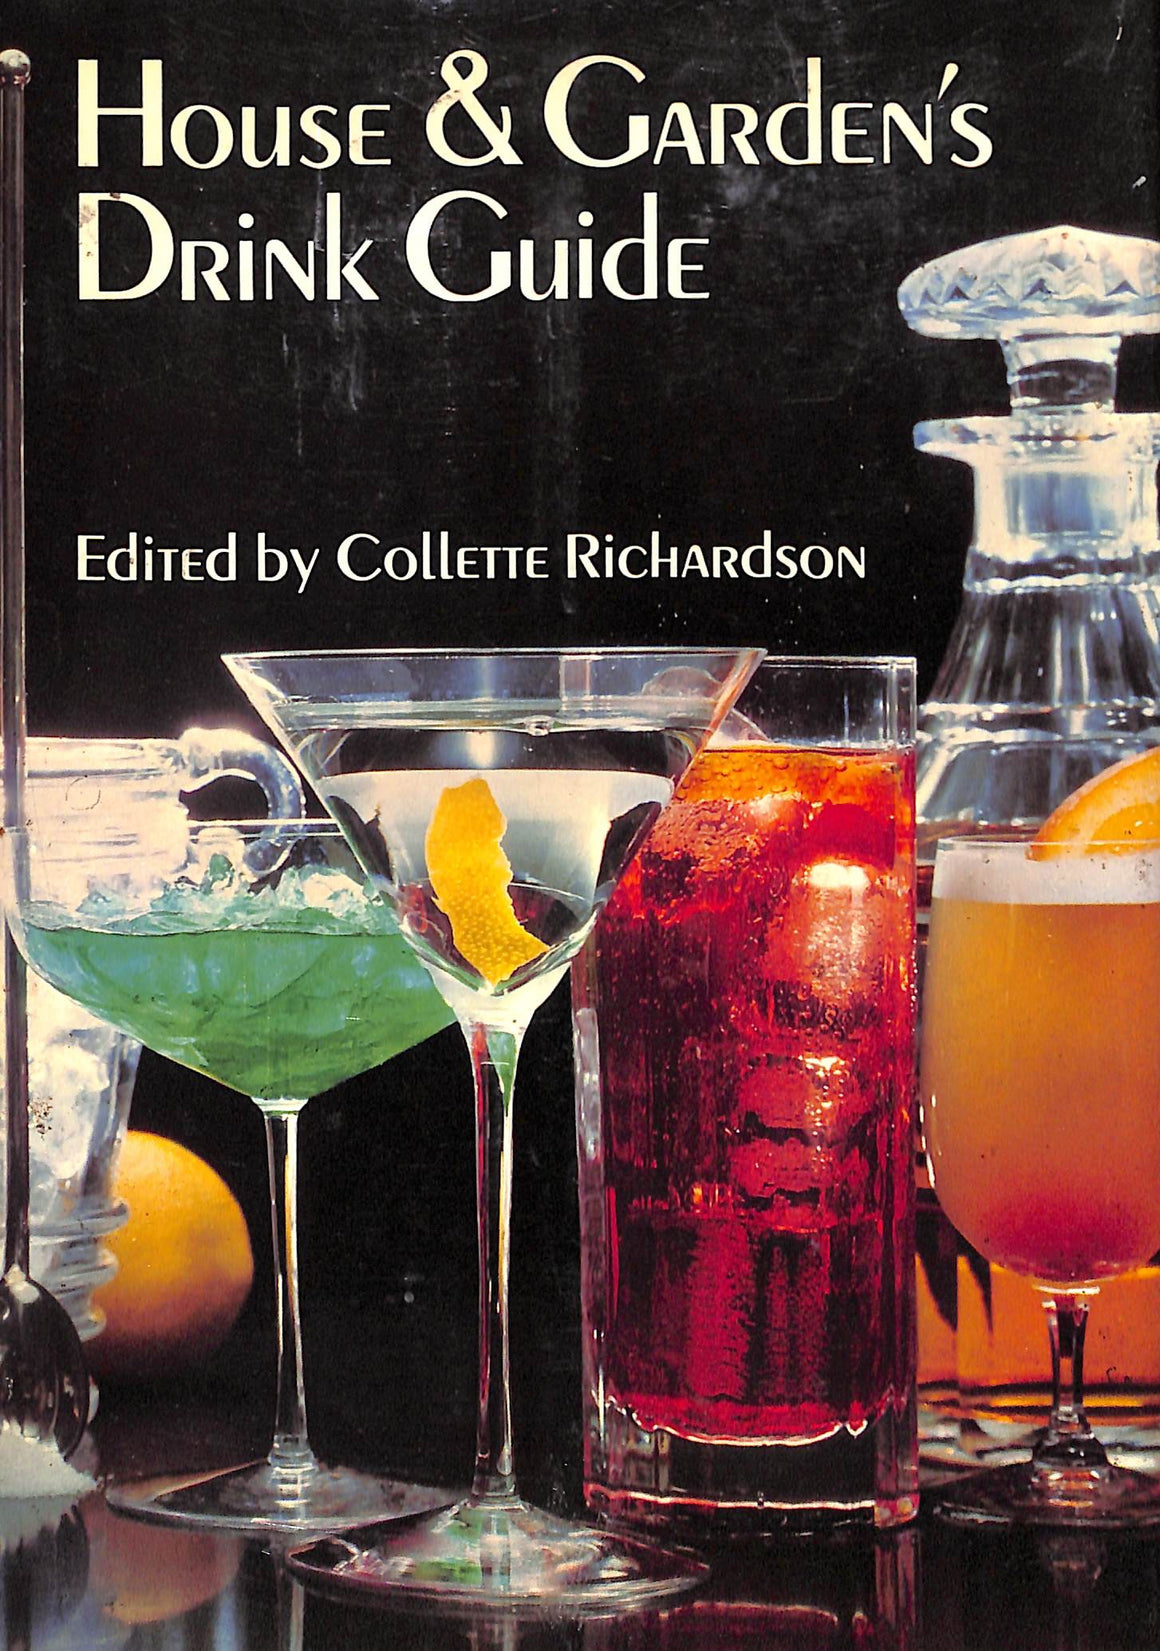 House & Garden's Drink Guide by Collette Richardson